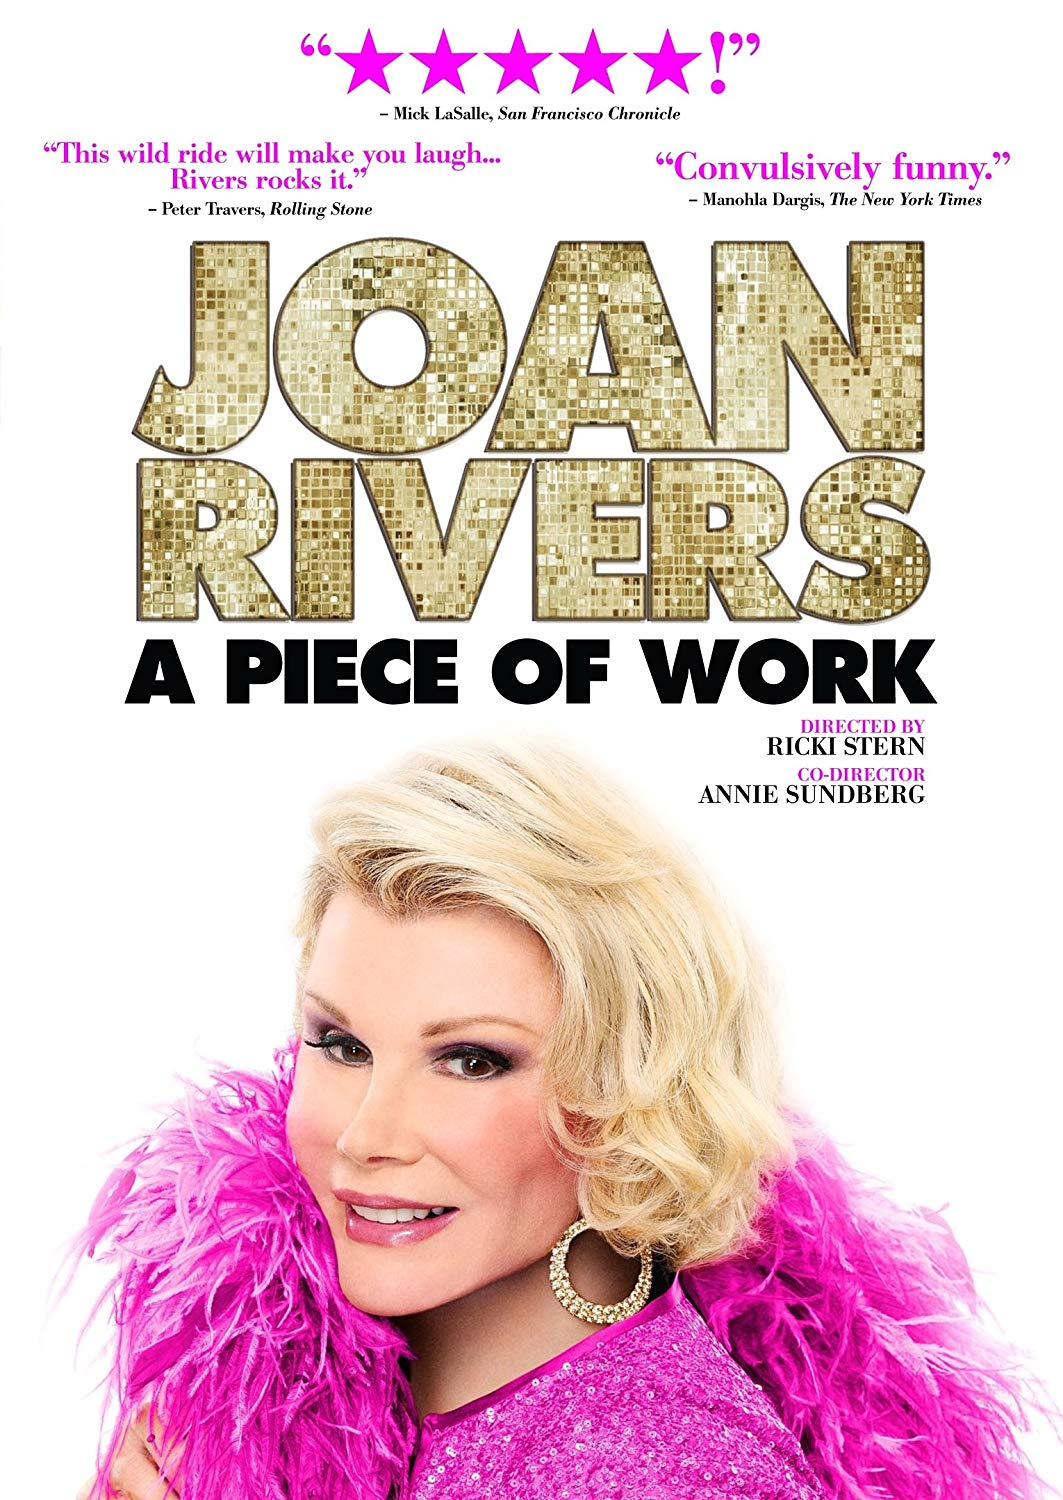 Still Admiring Joan Rivers